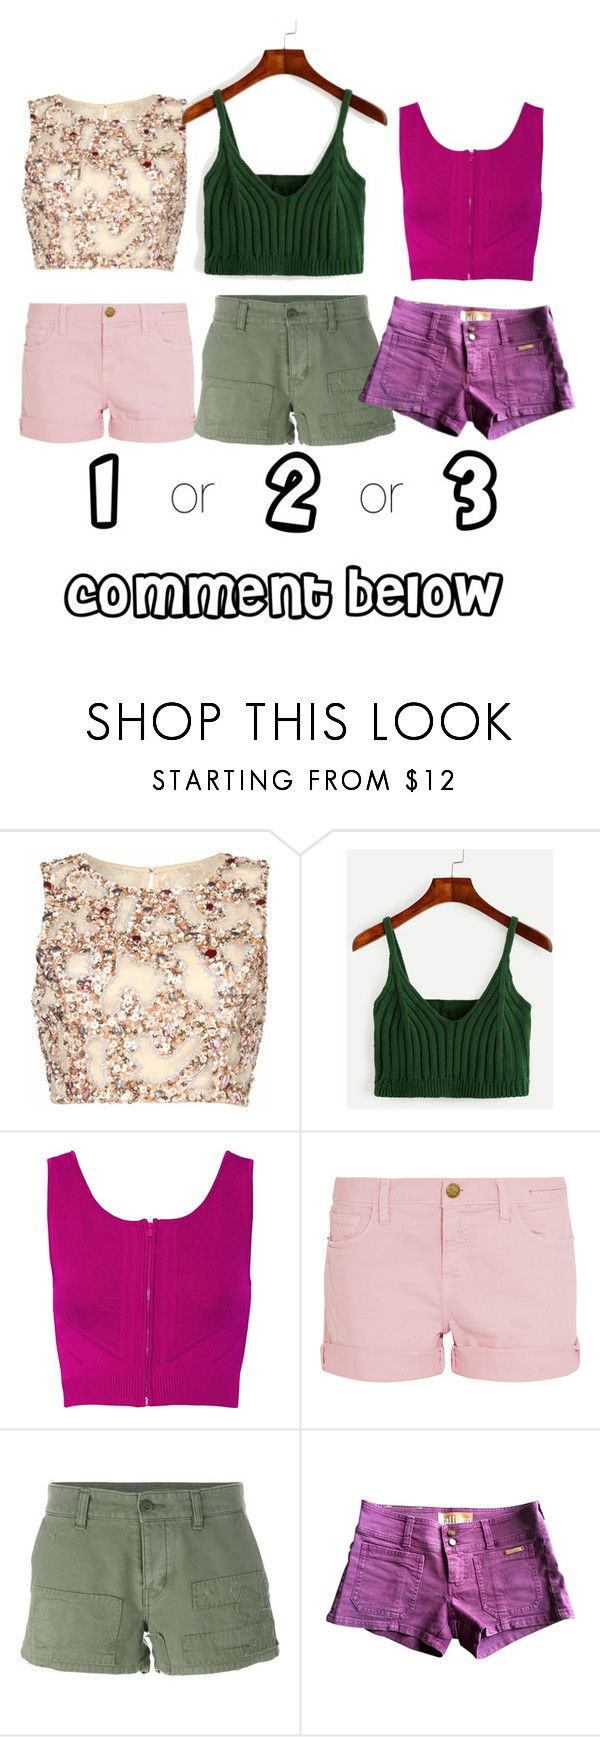 """Untitled #438"" by ellma94 ❤ liked on Polyvore featuring Raishma, Ohne Titel, Current/Elliott, Yves Saint Laurent and John Galliano"